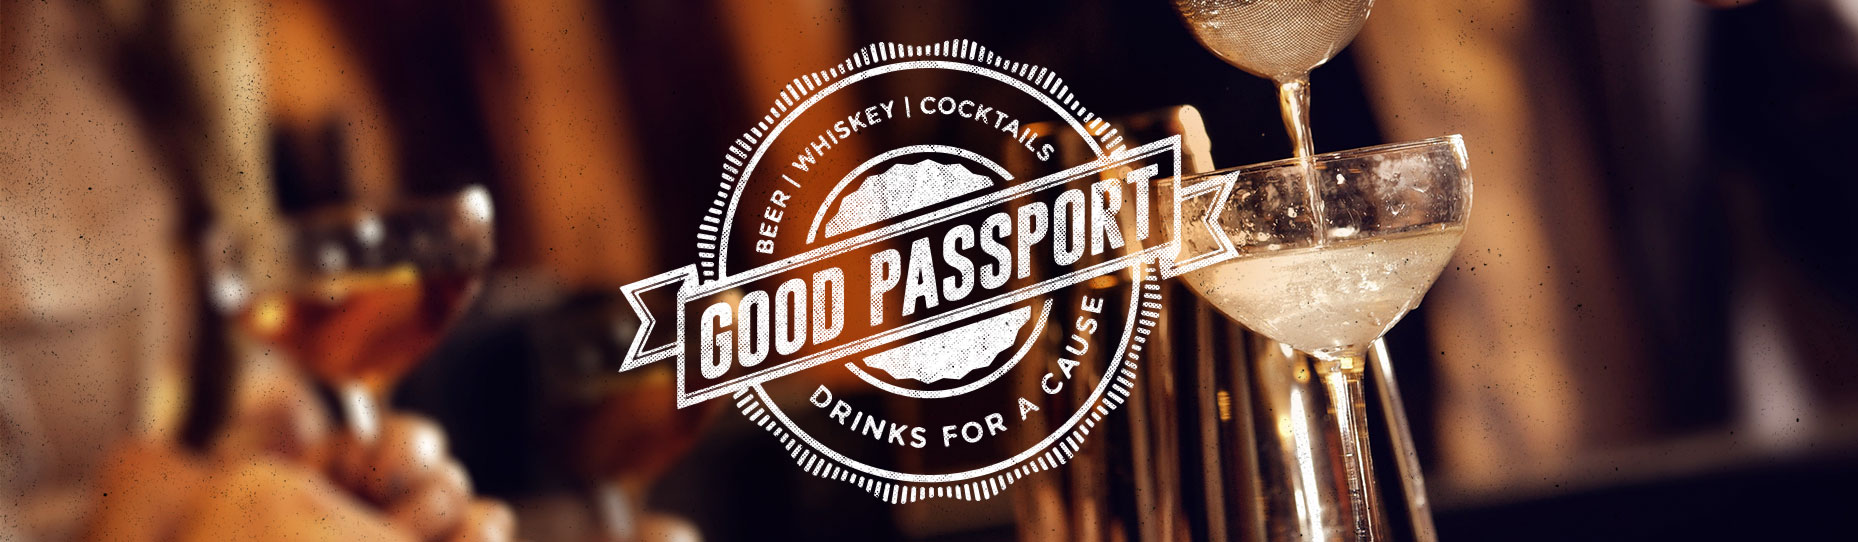 the-good-passport_Website-Header_01-Cocktails